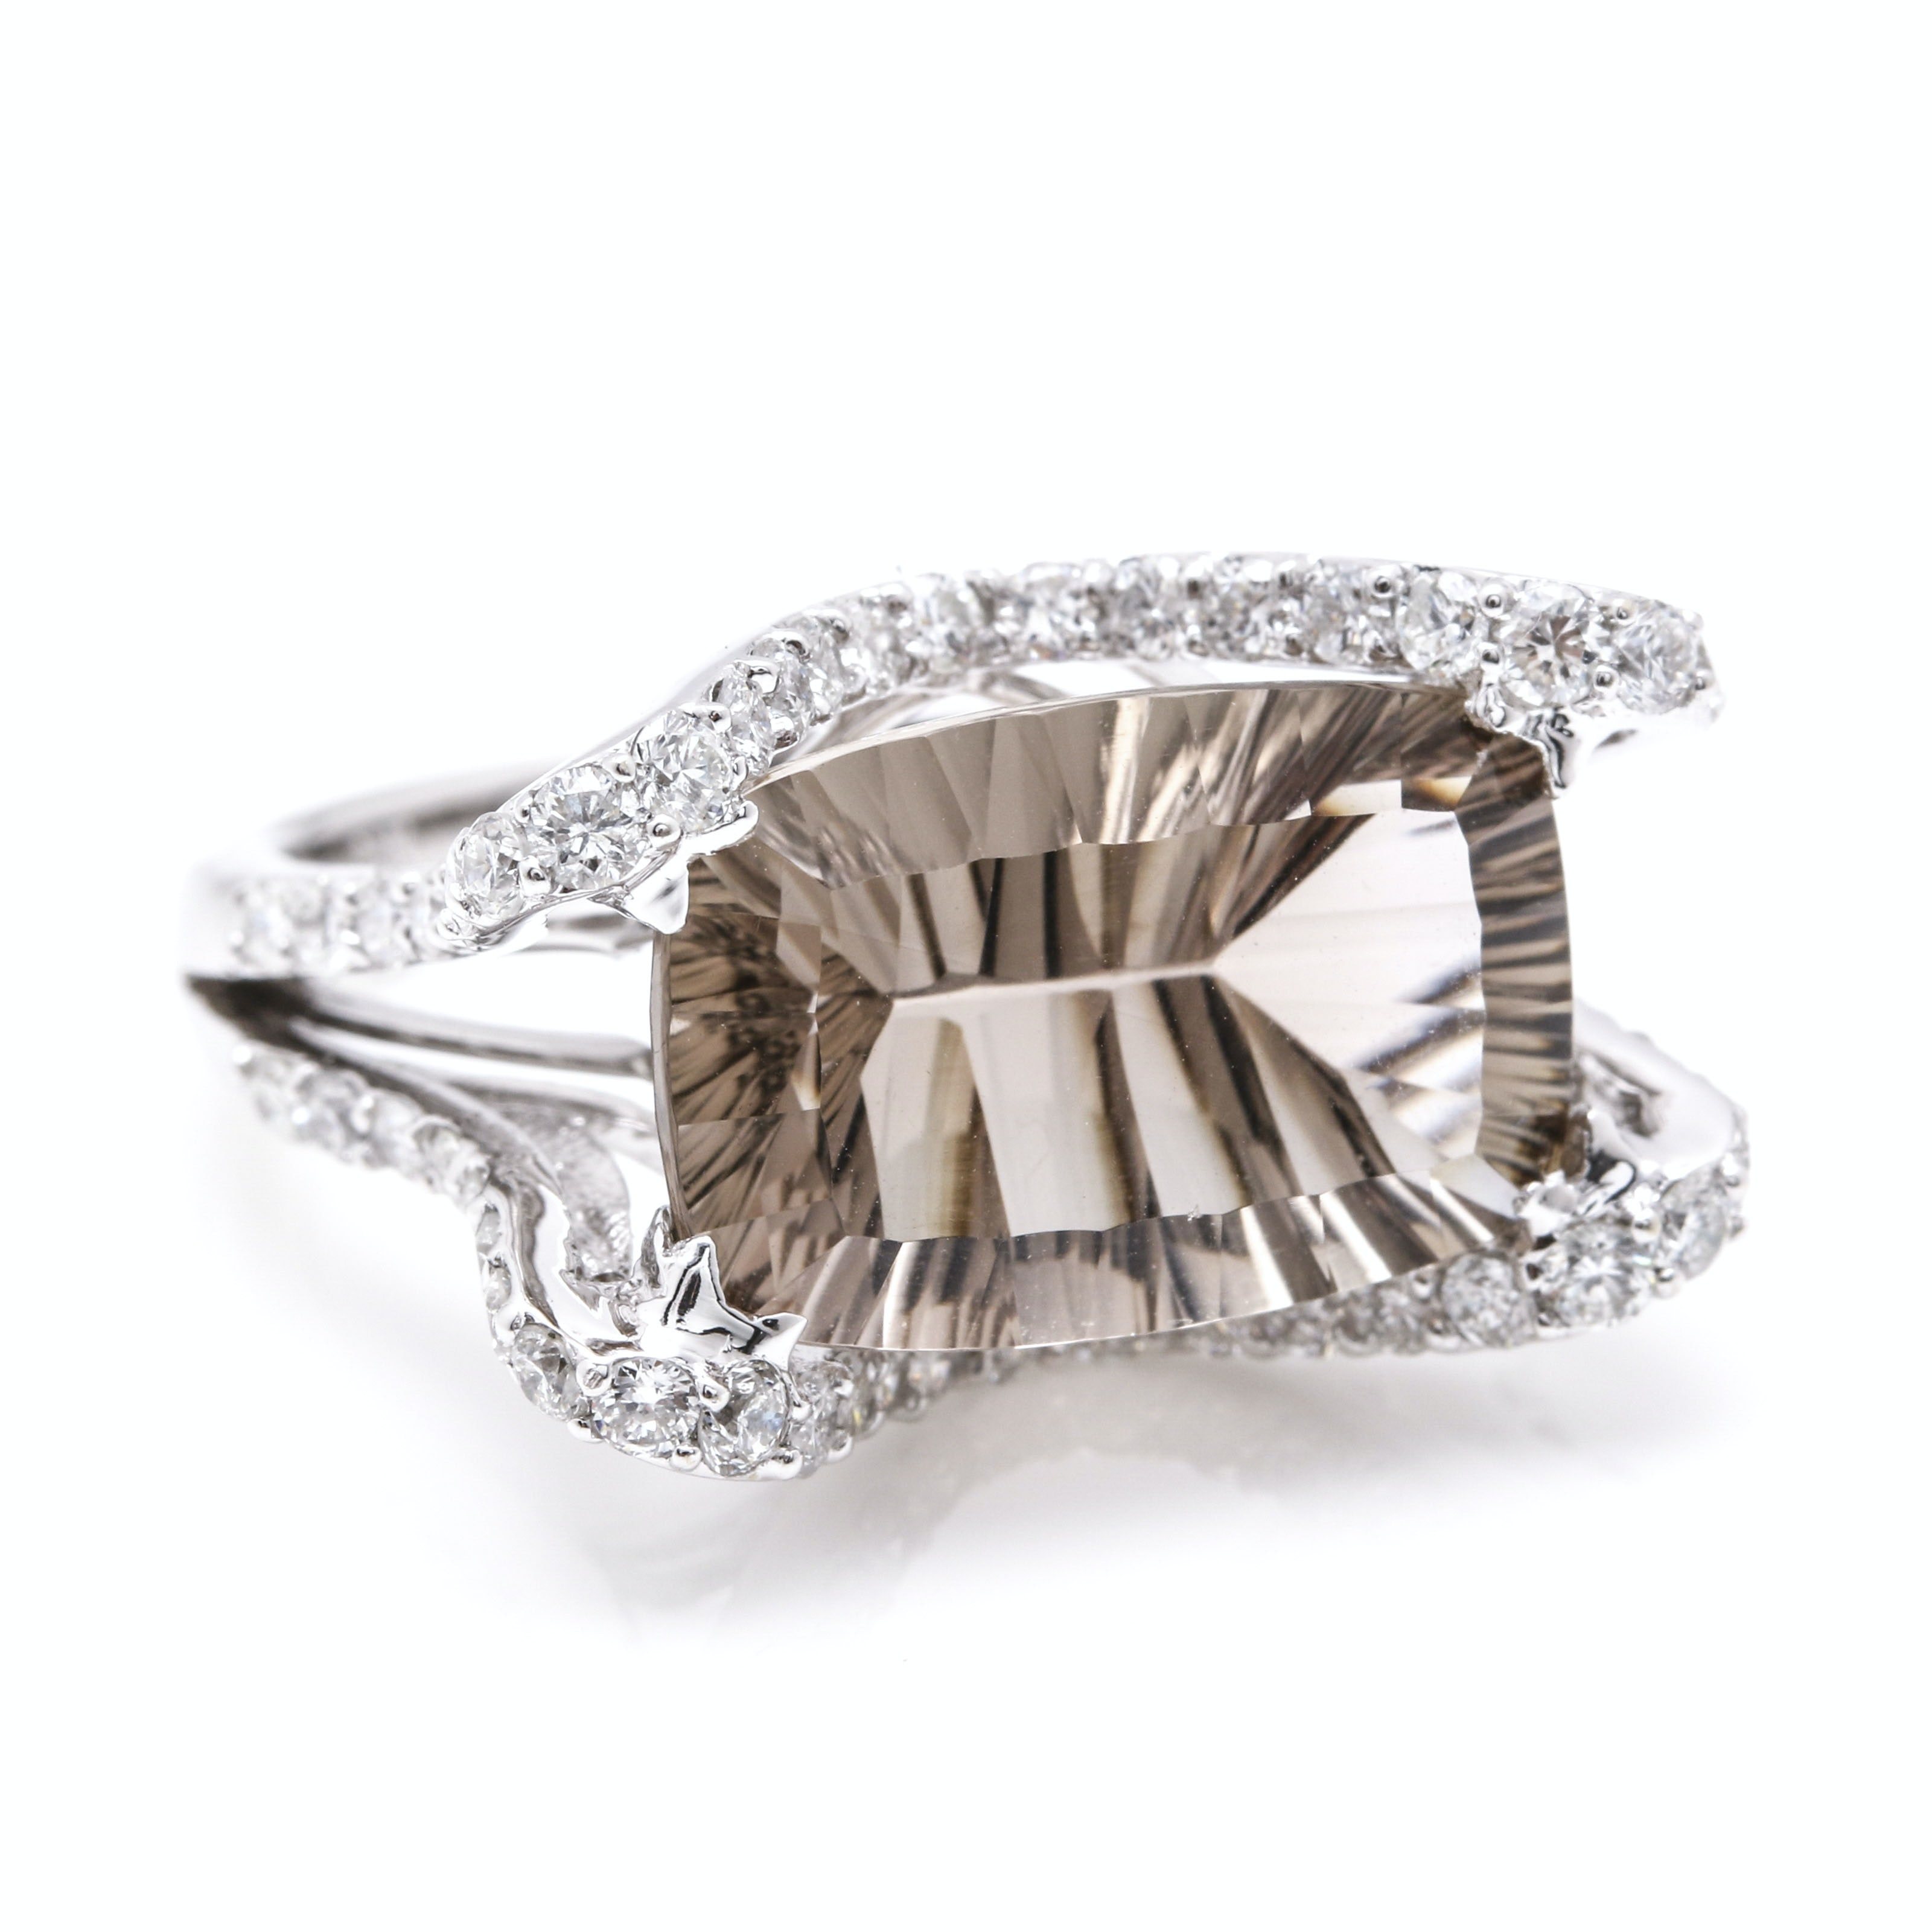 18K White Gold Smoky Quartz and 1.20 CTW Diamond Cocktail Ring